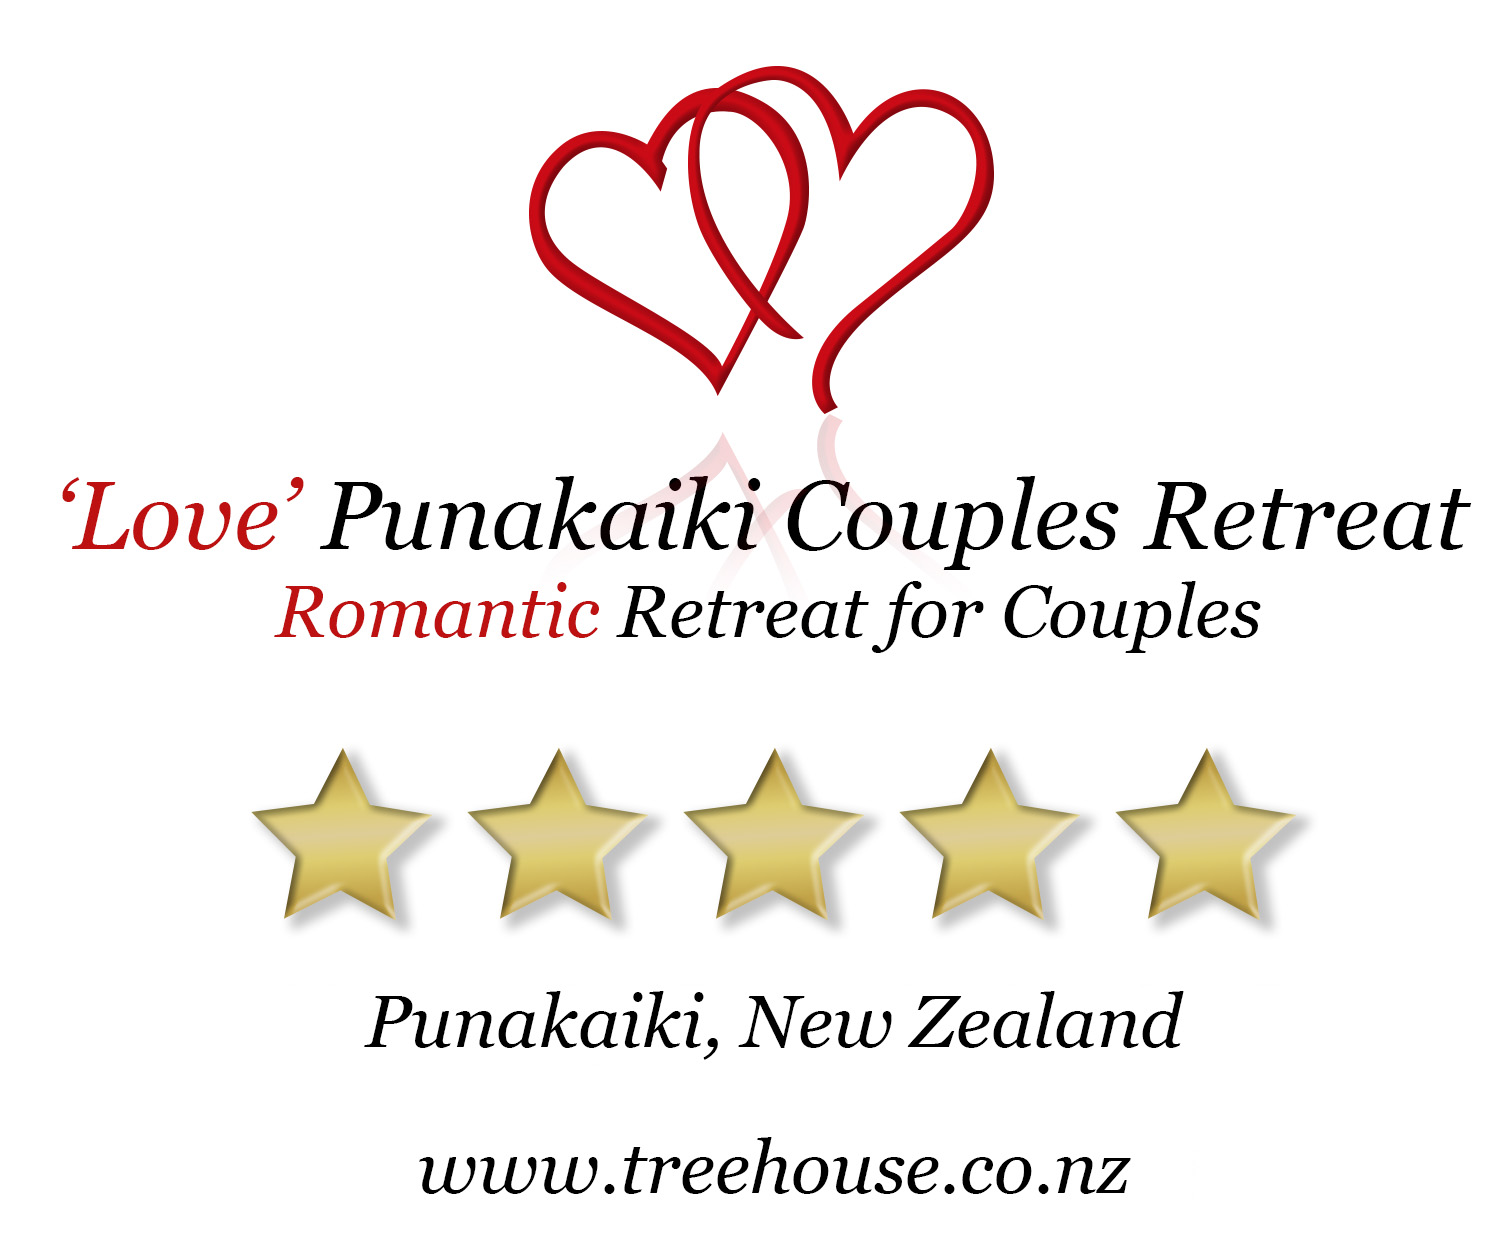 The Punakaiki Treehouse